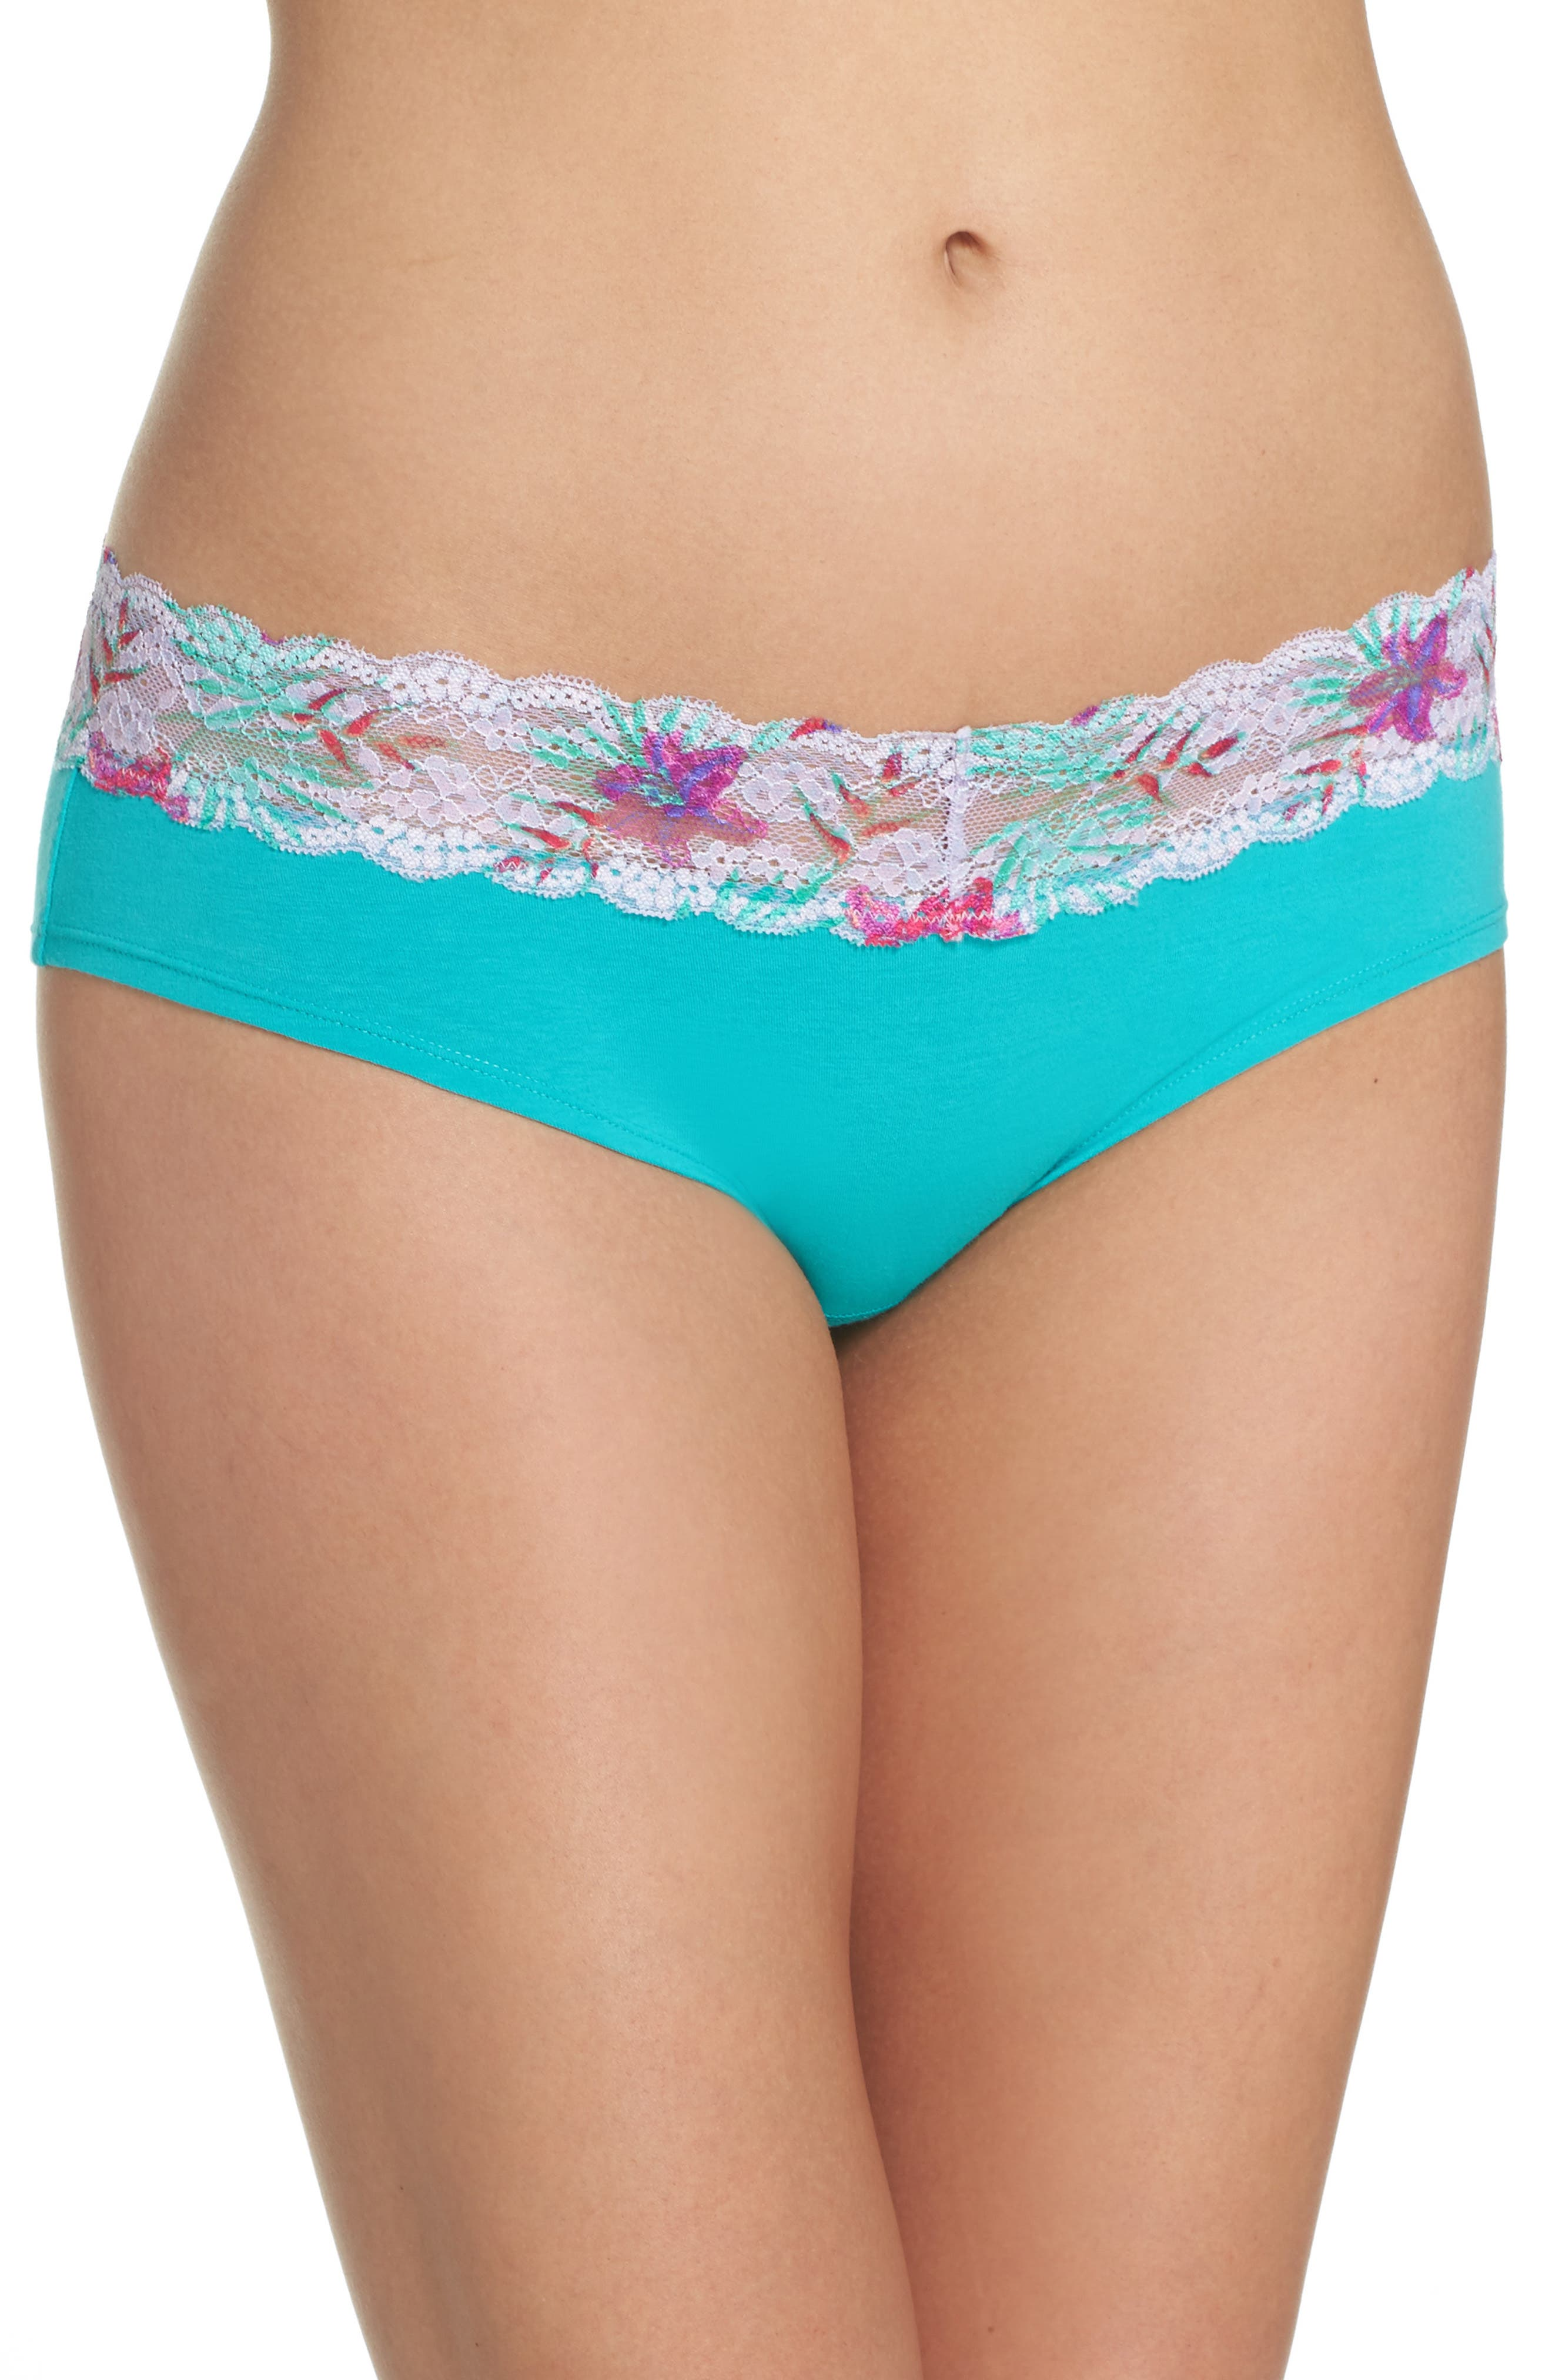 Alternate Image 1 Selected - h.dew 'Becca' Hipster Briefs (5 for $30)